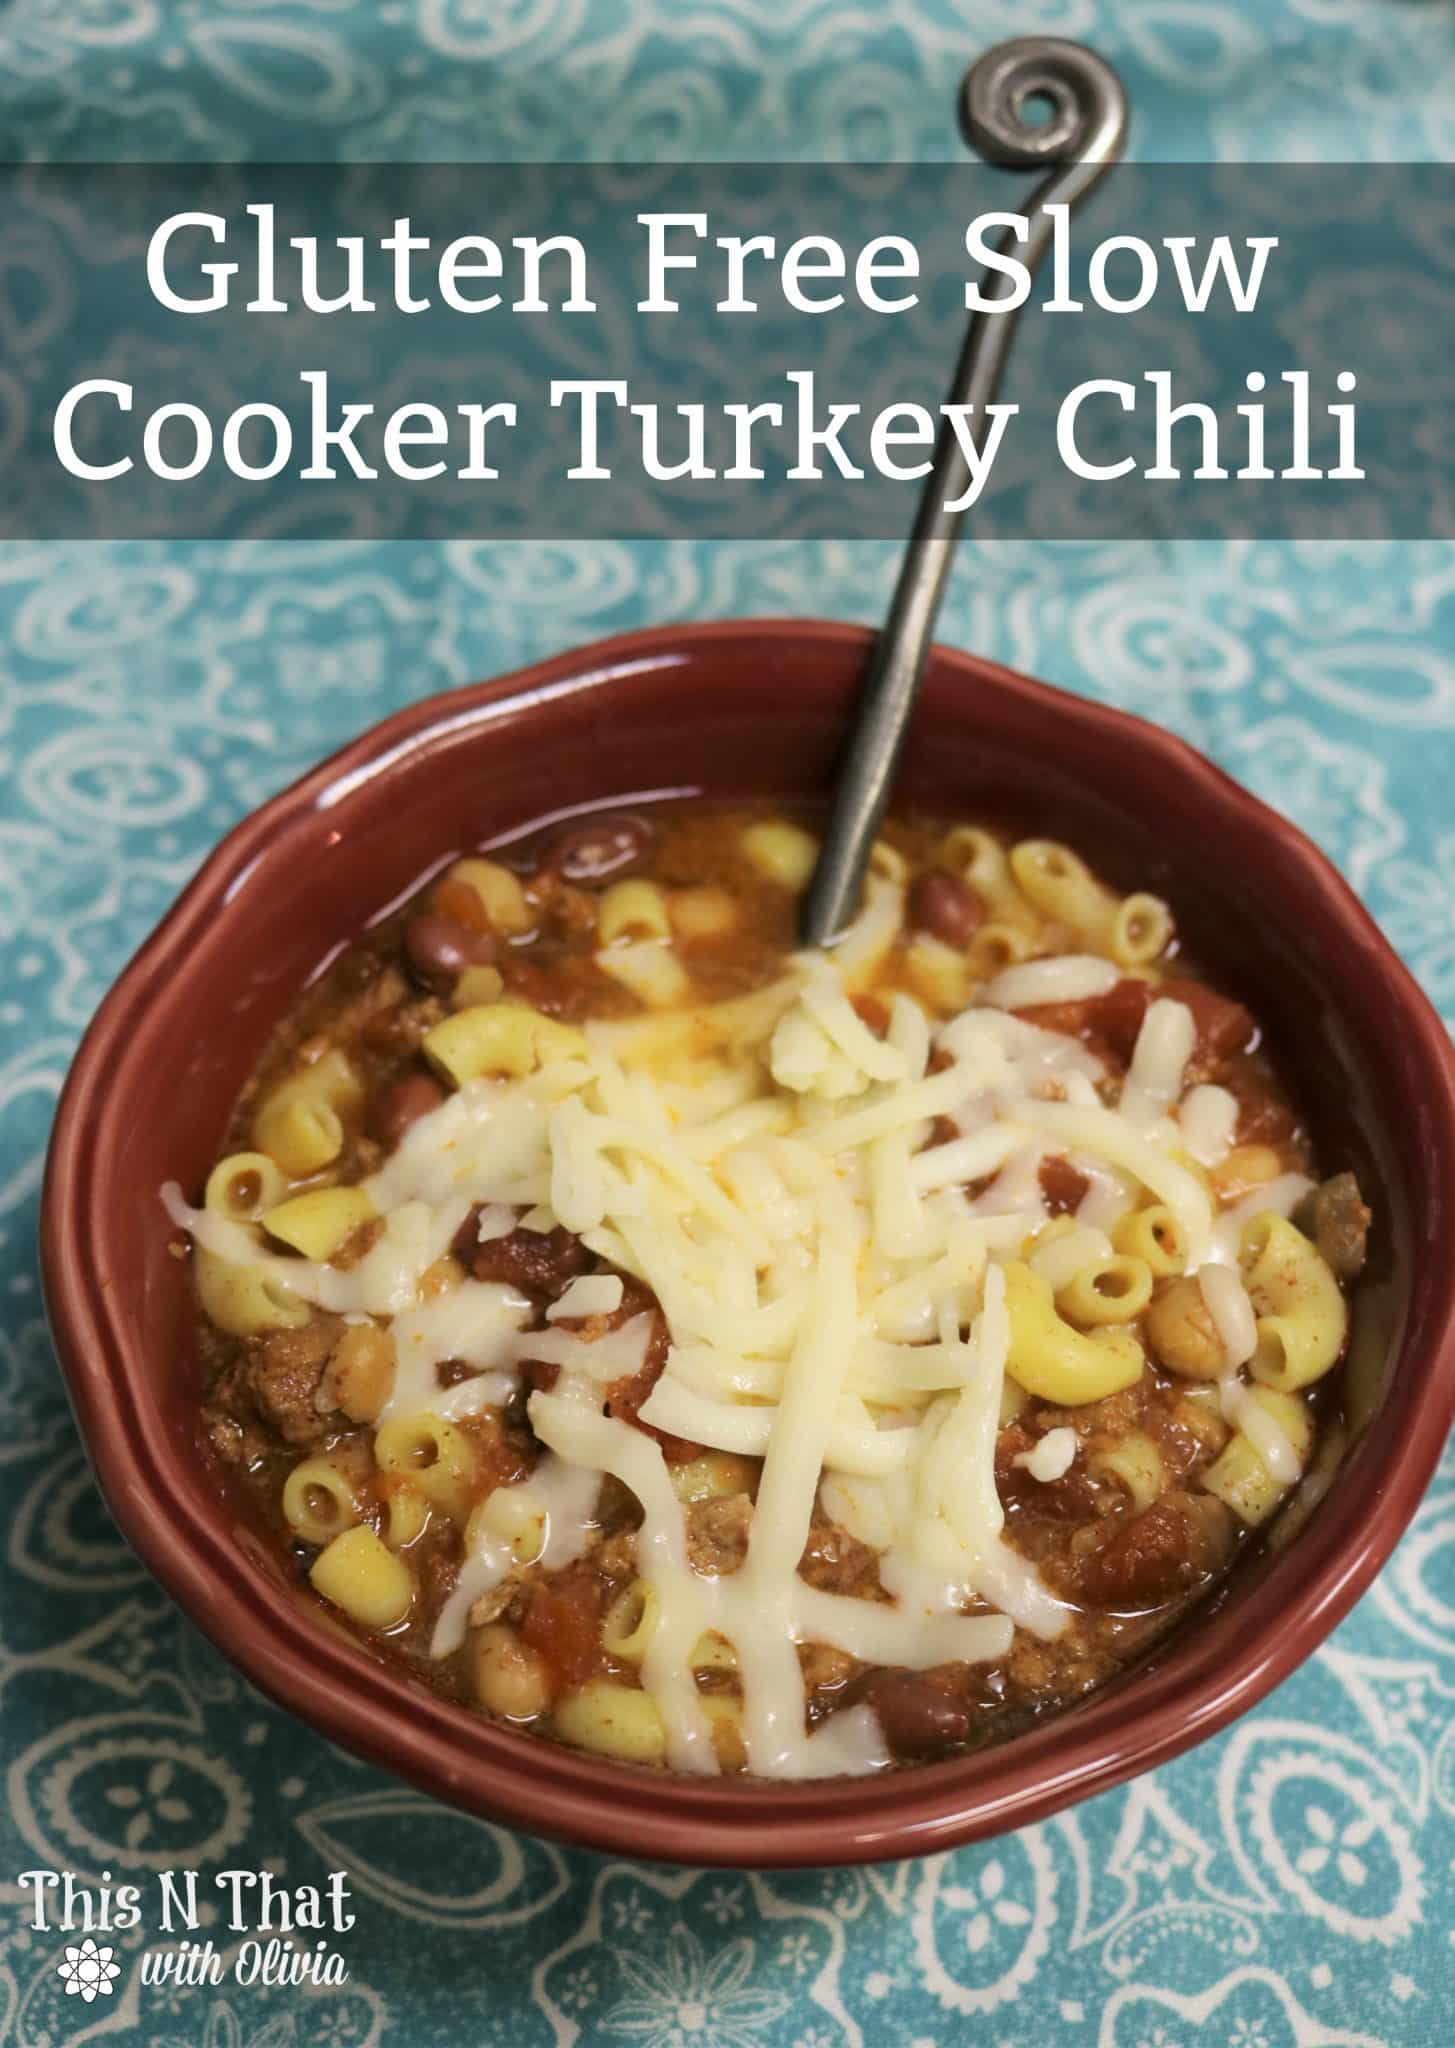 Gluten Free Slow Cooker Turkey Chili